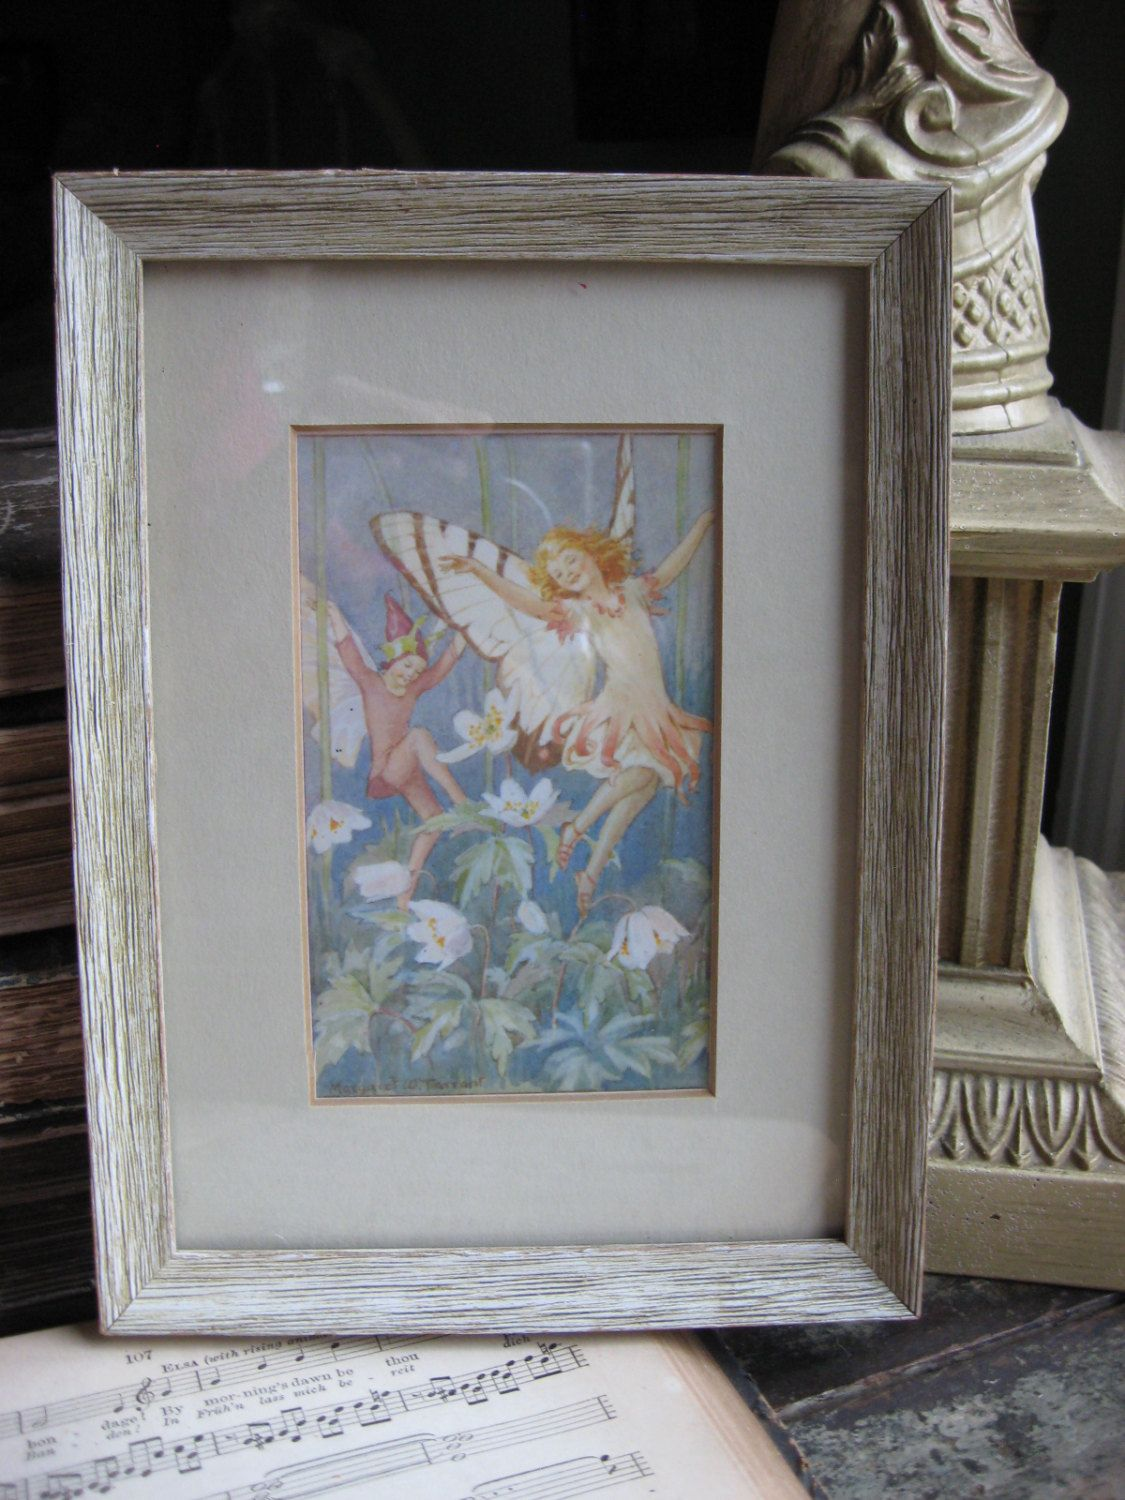 Enchanting Fairy Framed Print Maraget Tarrant The Wood Anemone Fairies Medici Fairies of the Countryside by GoodCharmVintage on Etsy